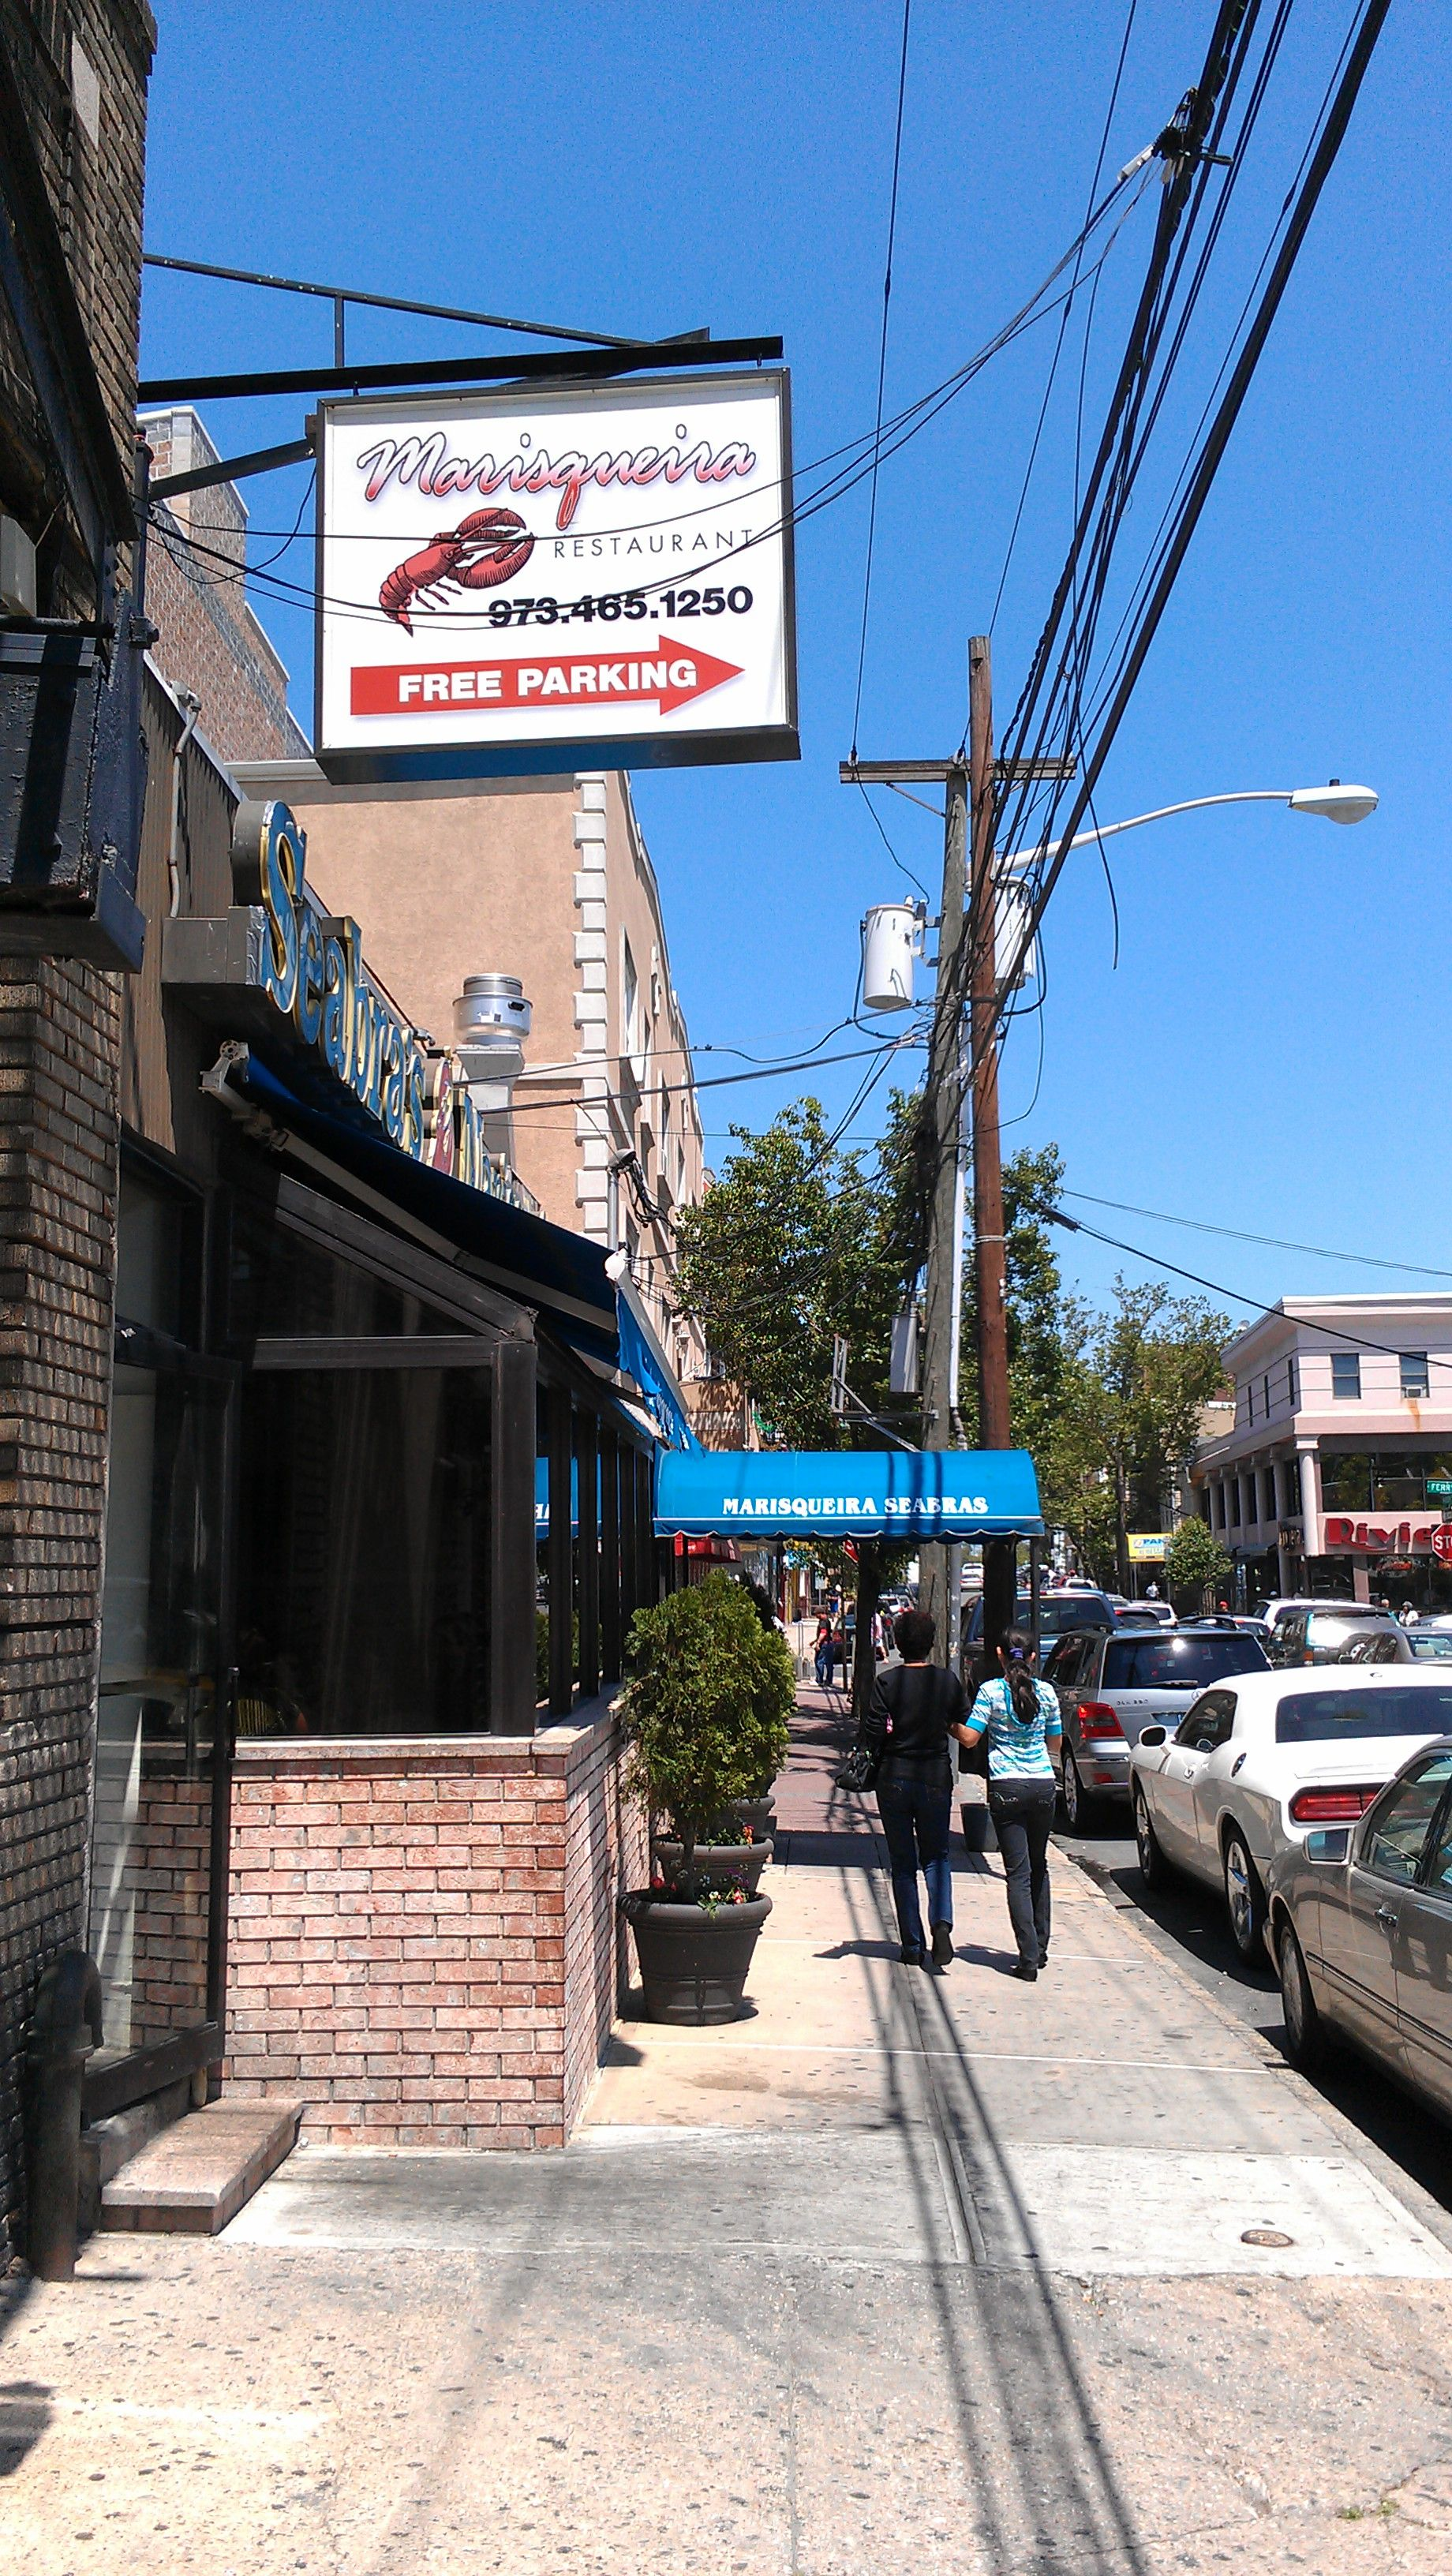 Portuguese Restaurant In Ironbound Section Of Newark Nj